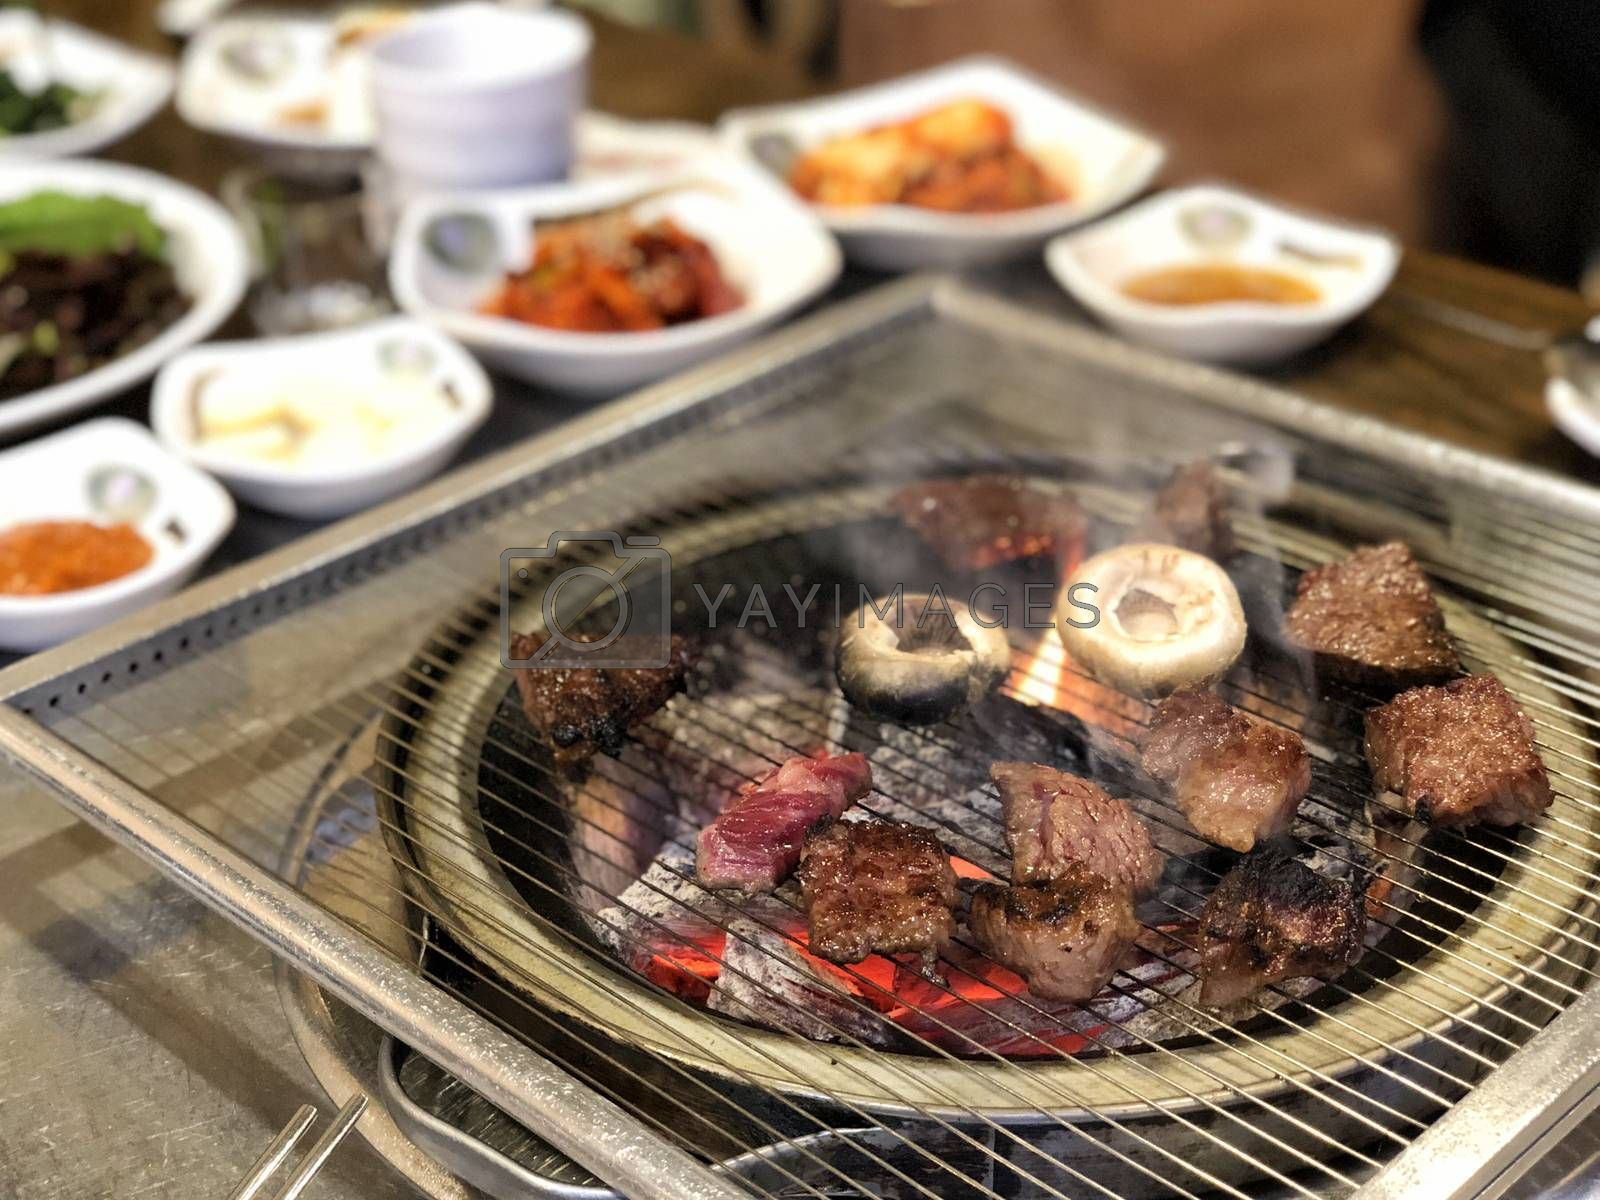 Grill meat on hot coals. This kind of food is a Korean or Japanese BBQ style.